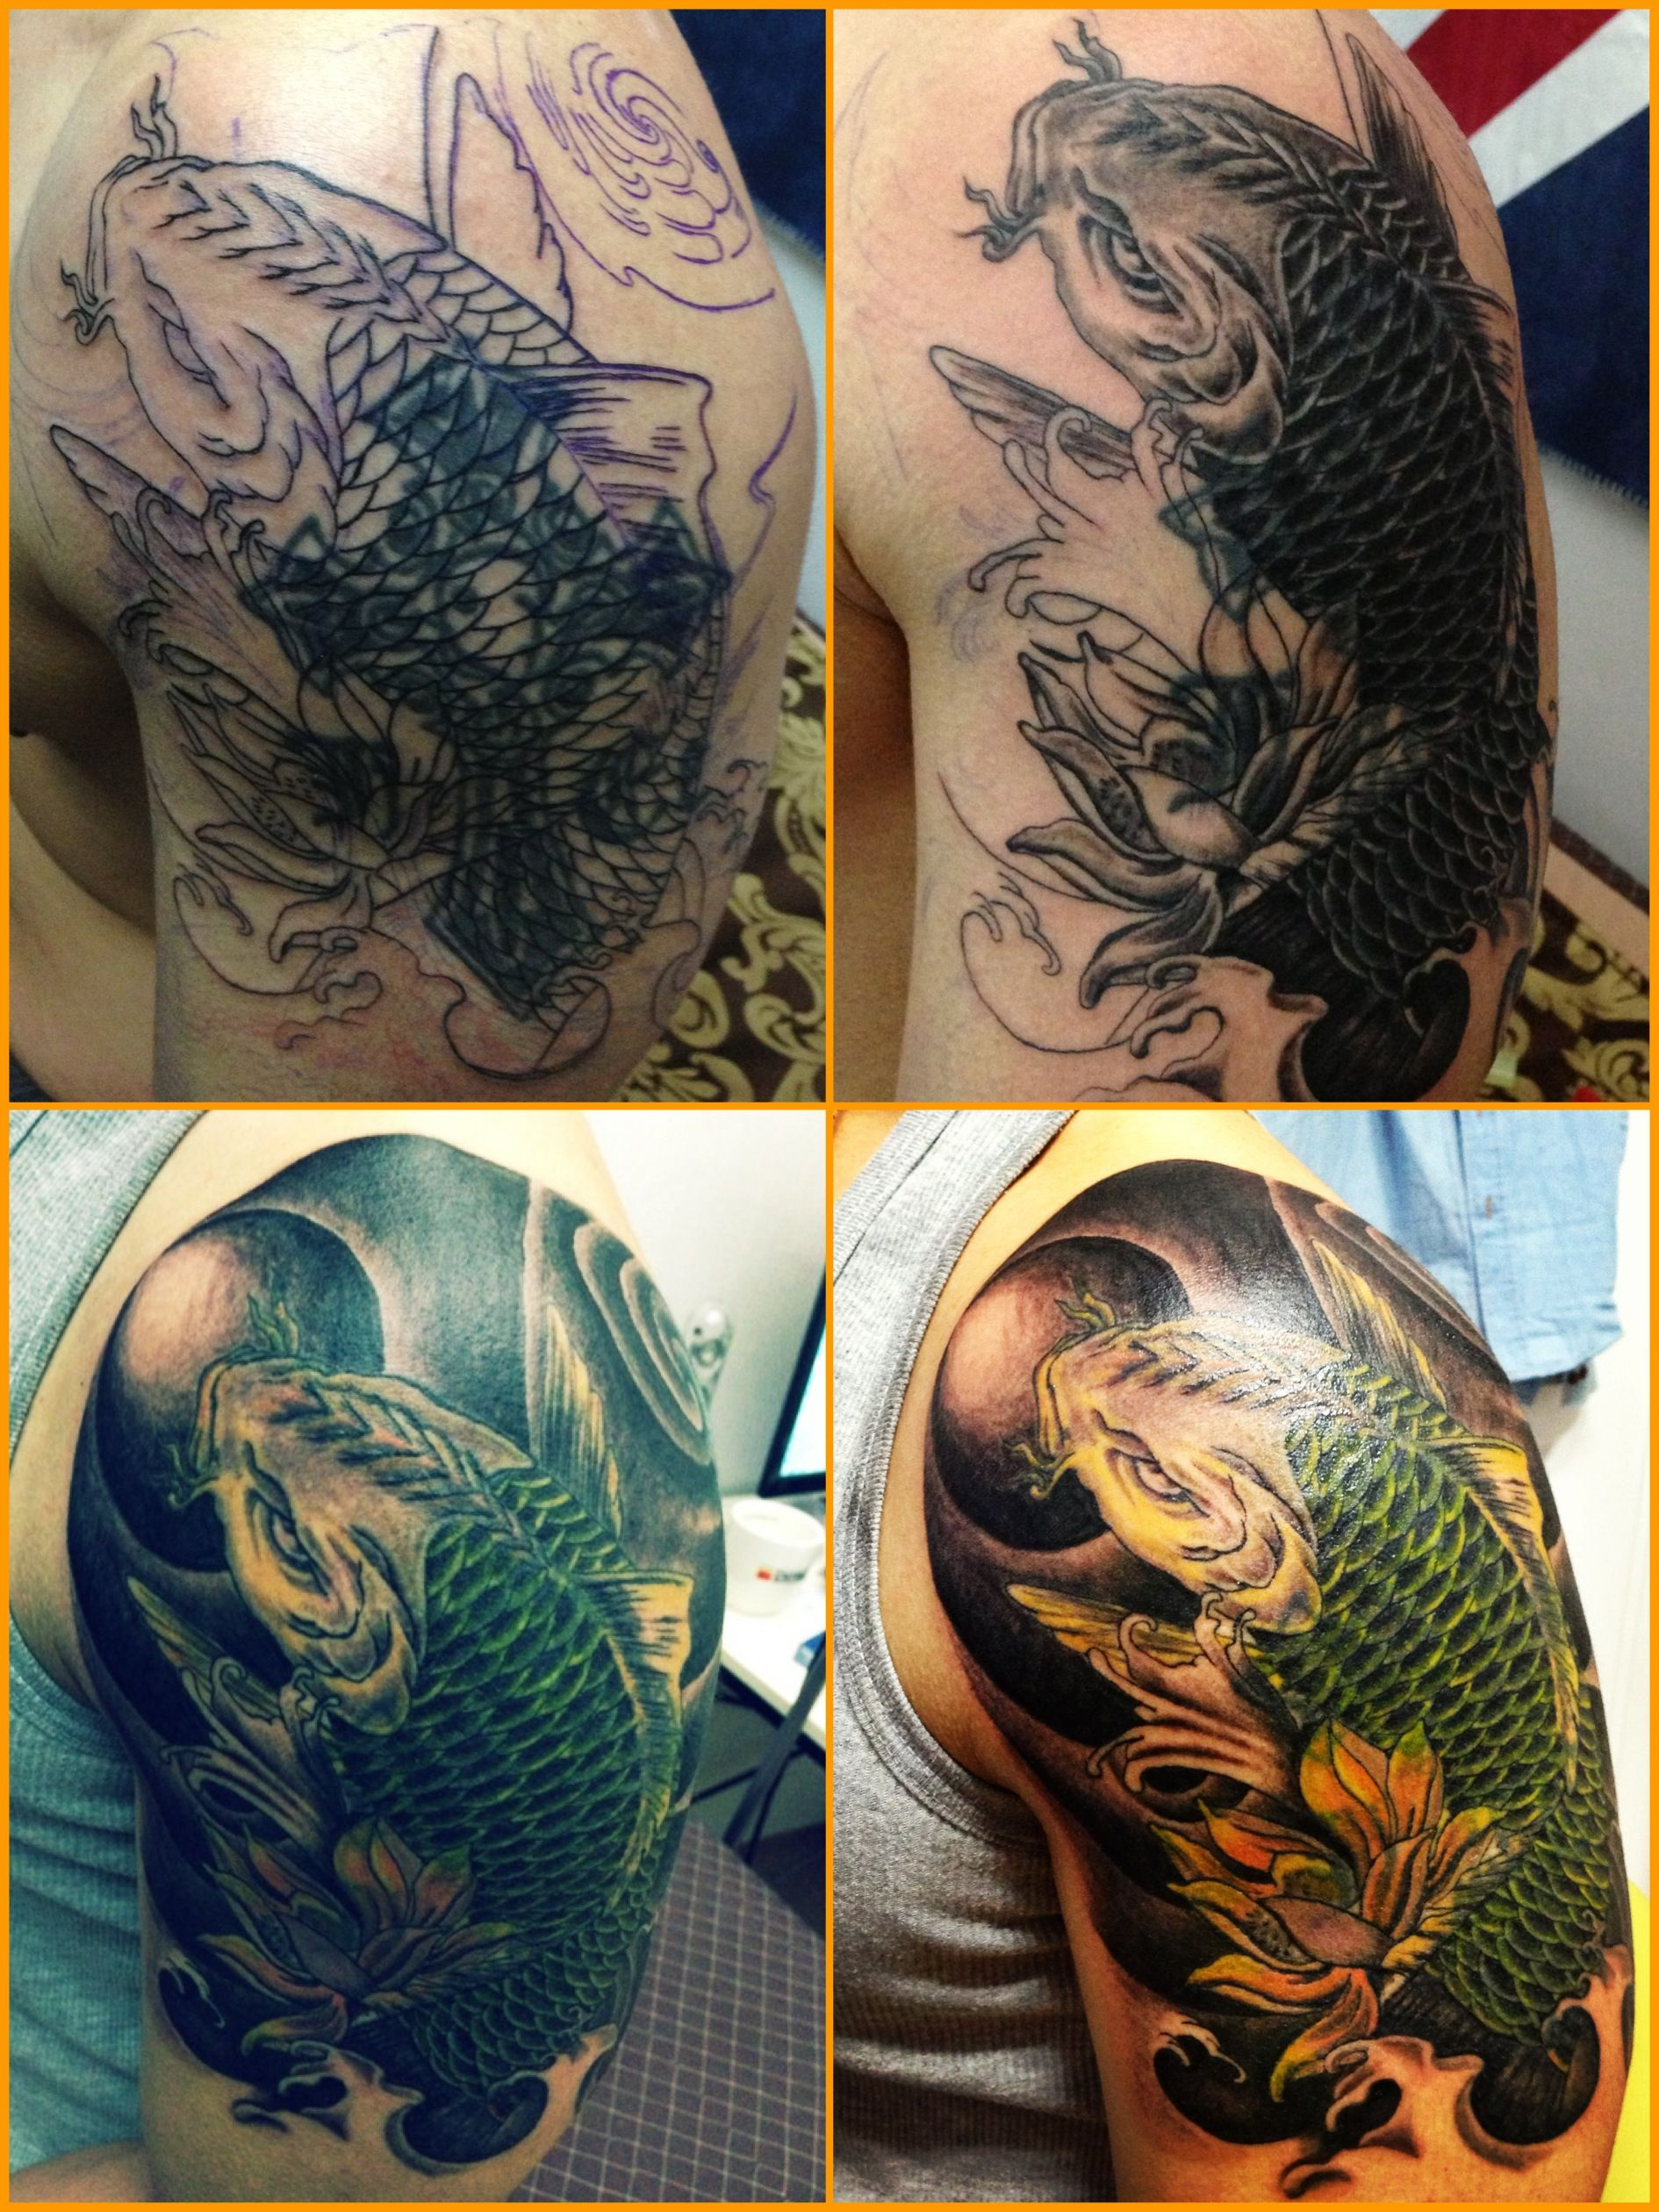 Coverup Tattoo By Jk Tattoo Cover Up Tattoos Tribal Tattoo Cover Up Cover Tattoo